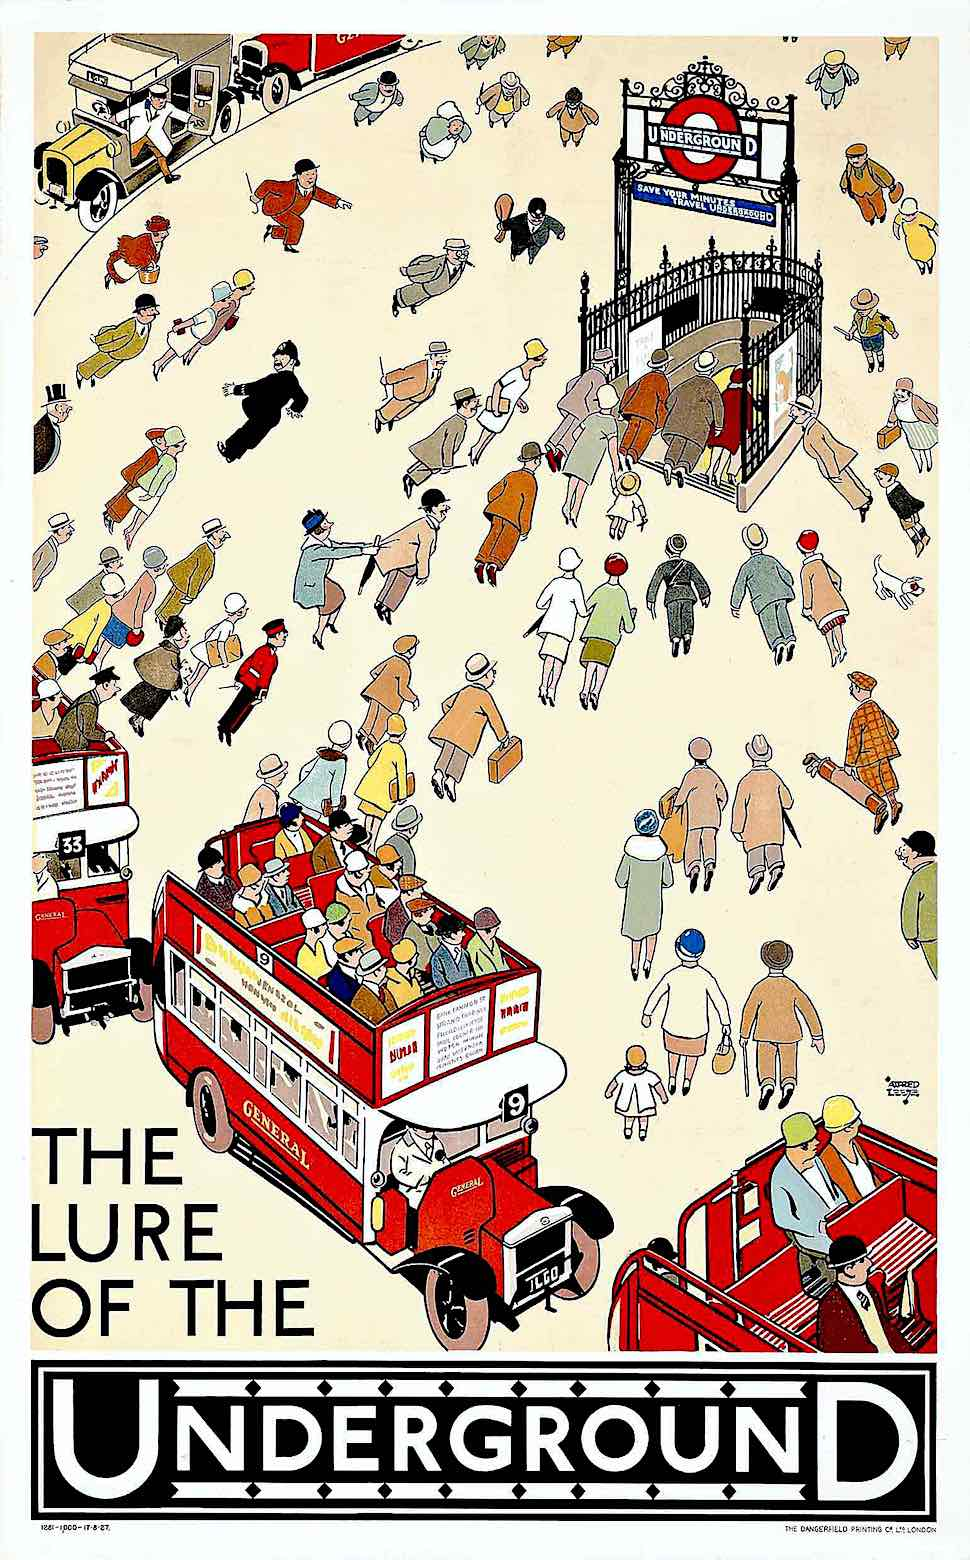 an Alfred Leete poster for the London subway